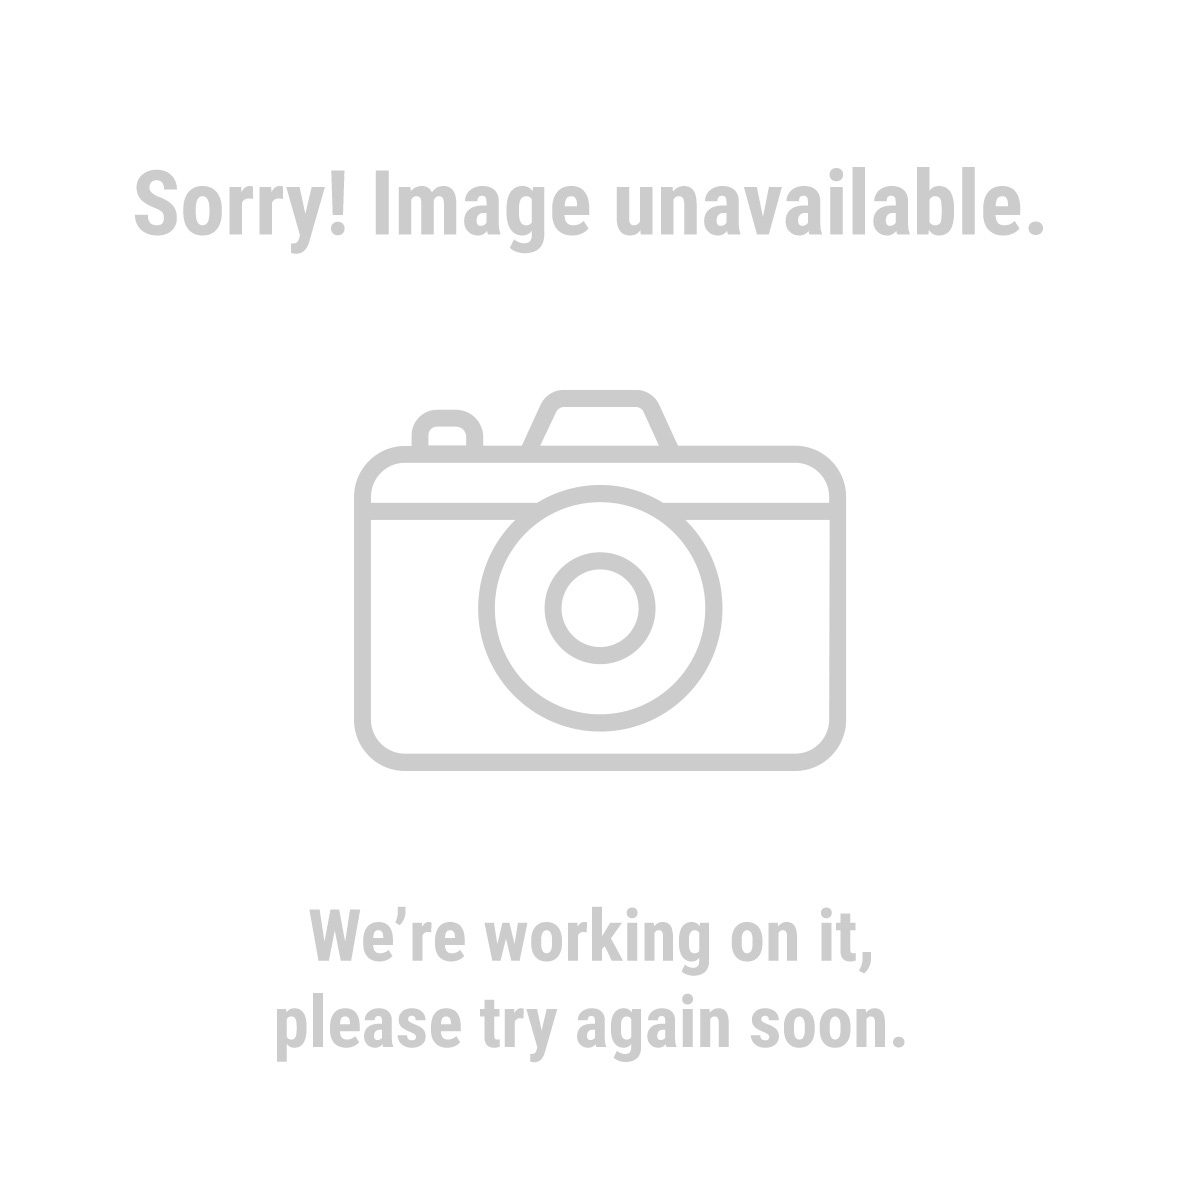 Storehouse 67569 32 Piece Metric Grease Fittings